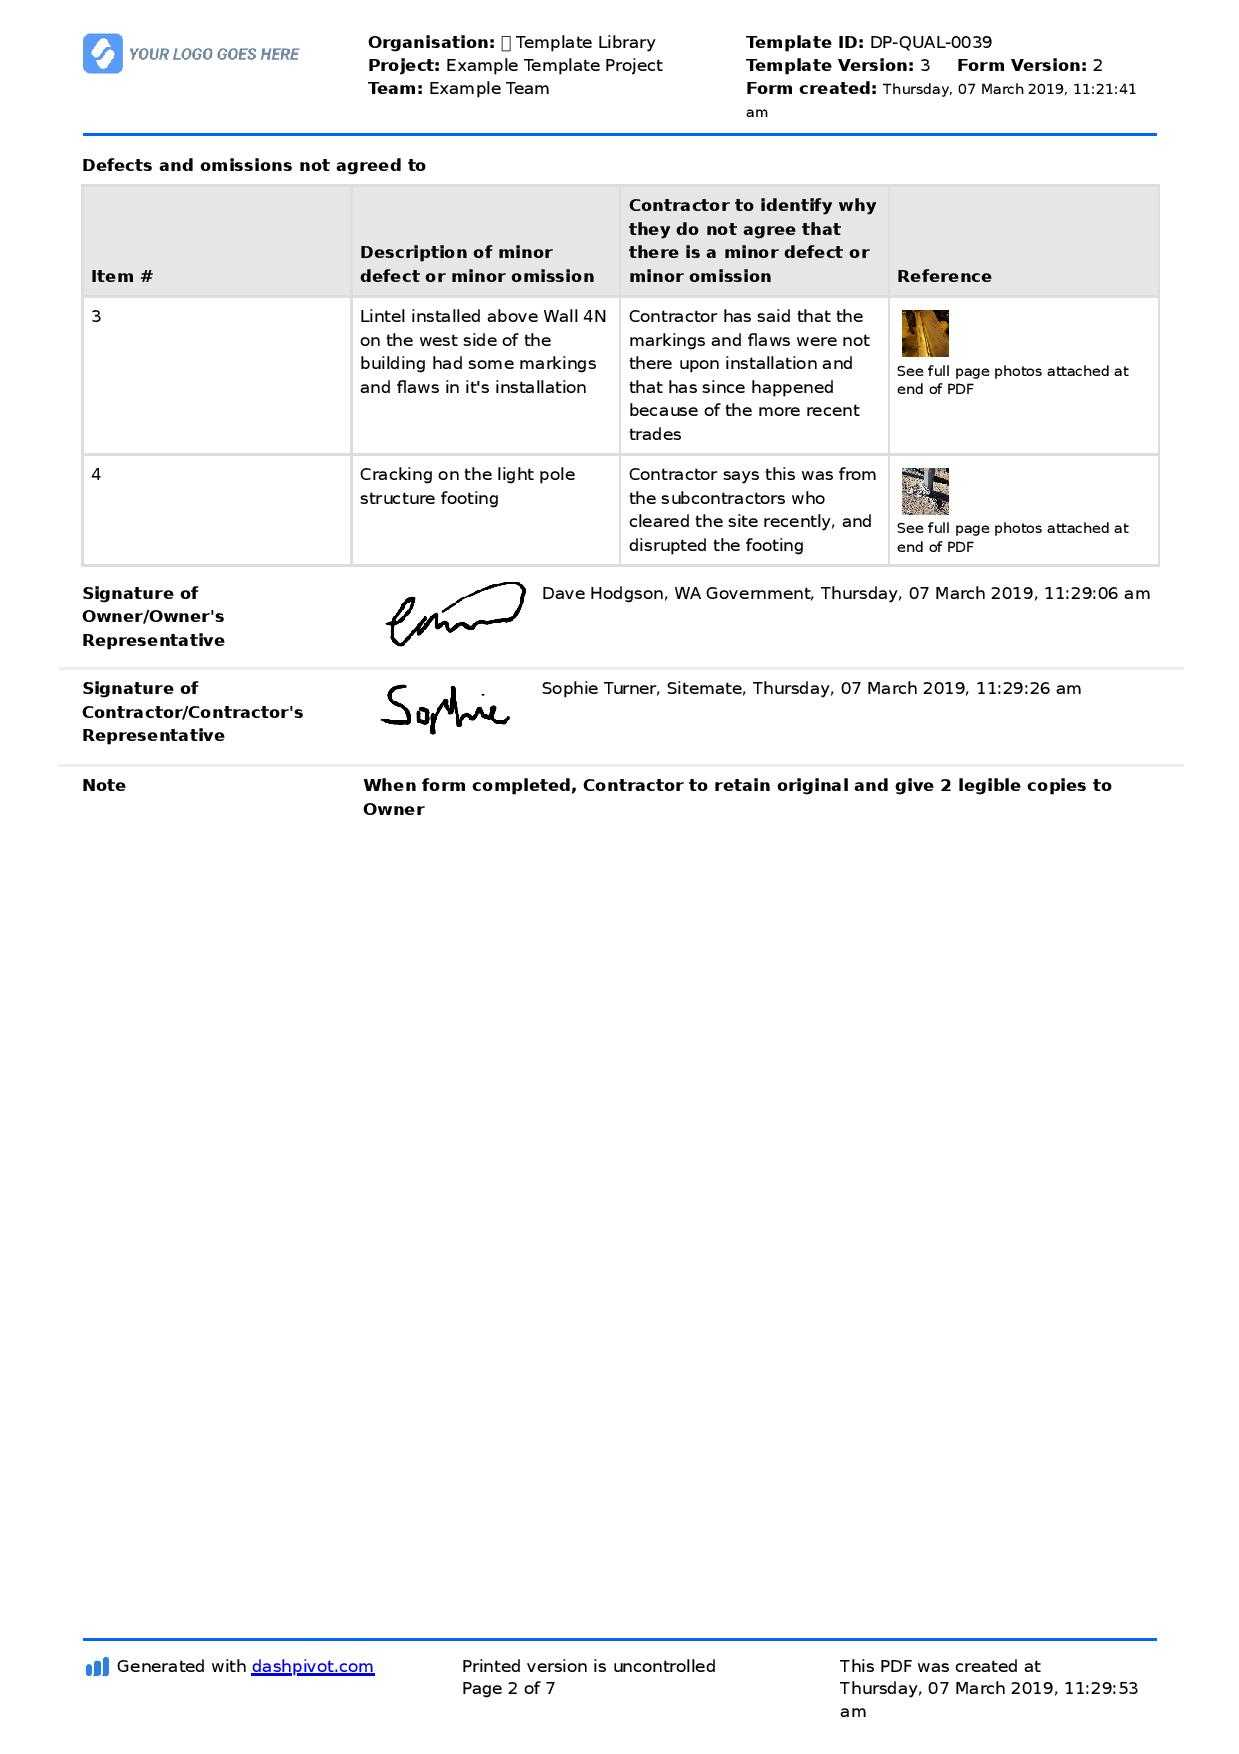 Letter To Contractor For Defective Work: Sample Letter And Inside Construction Deficiency Report Template